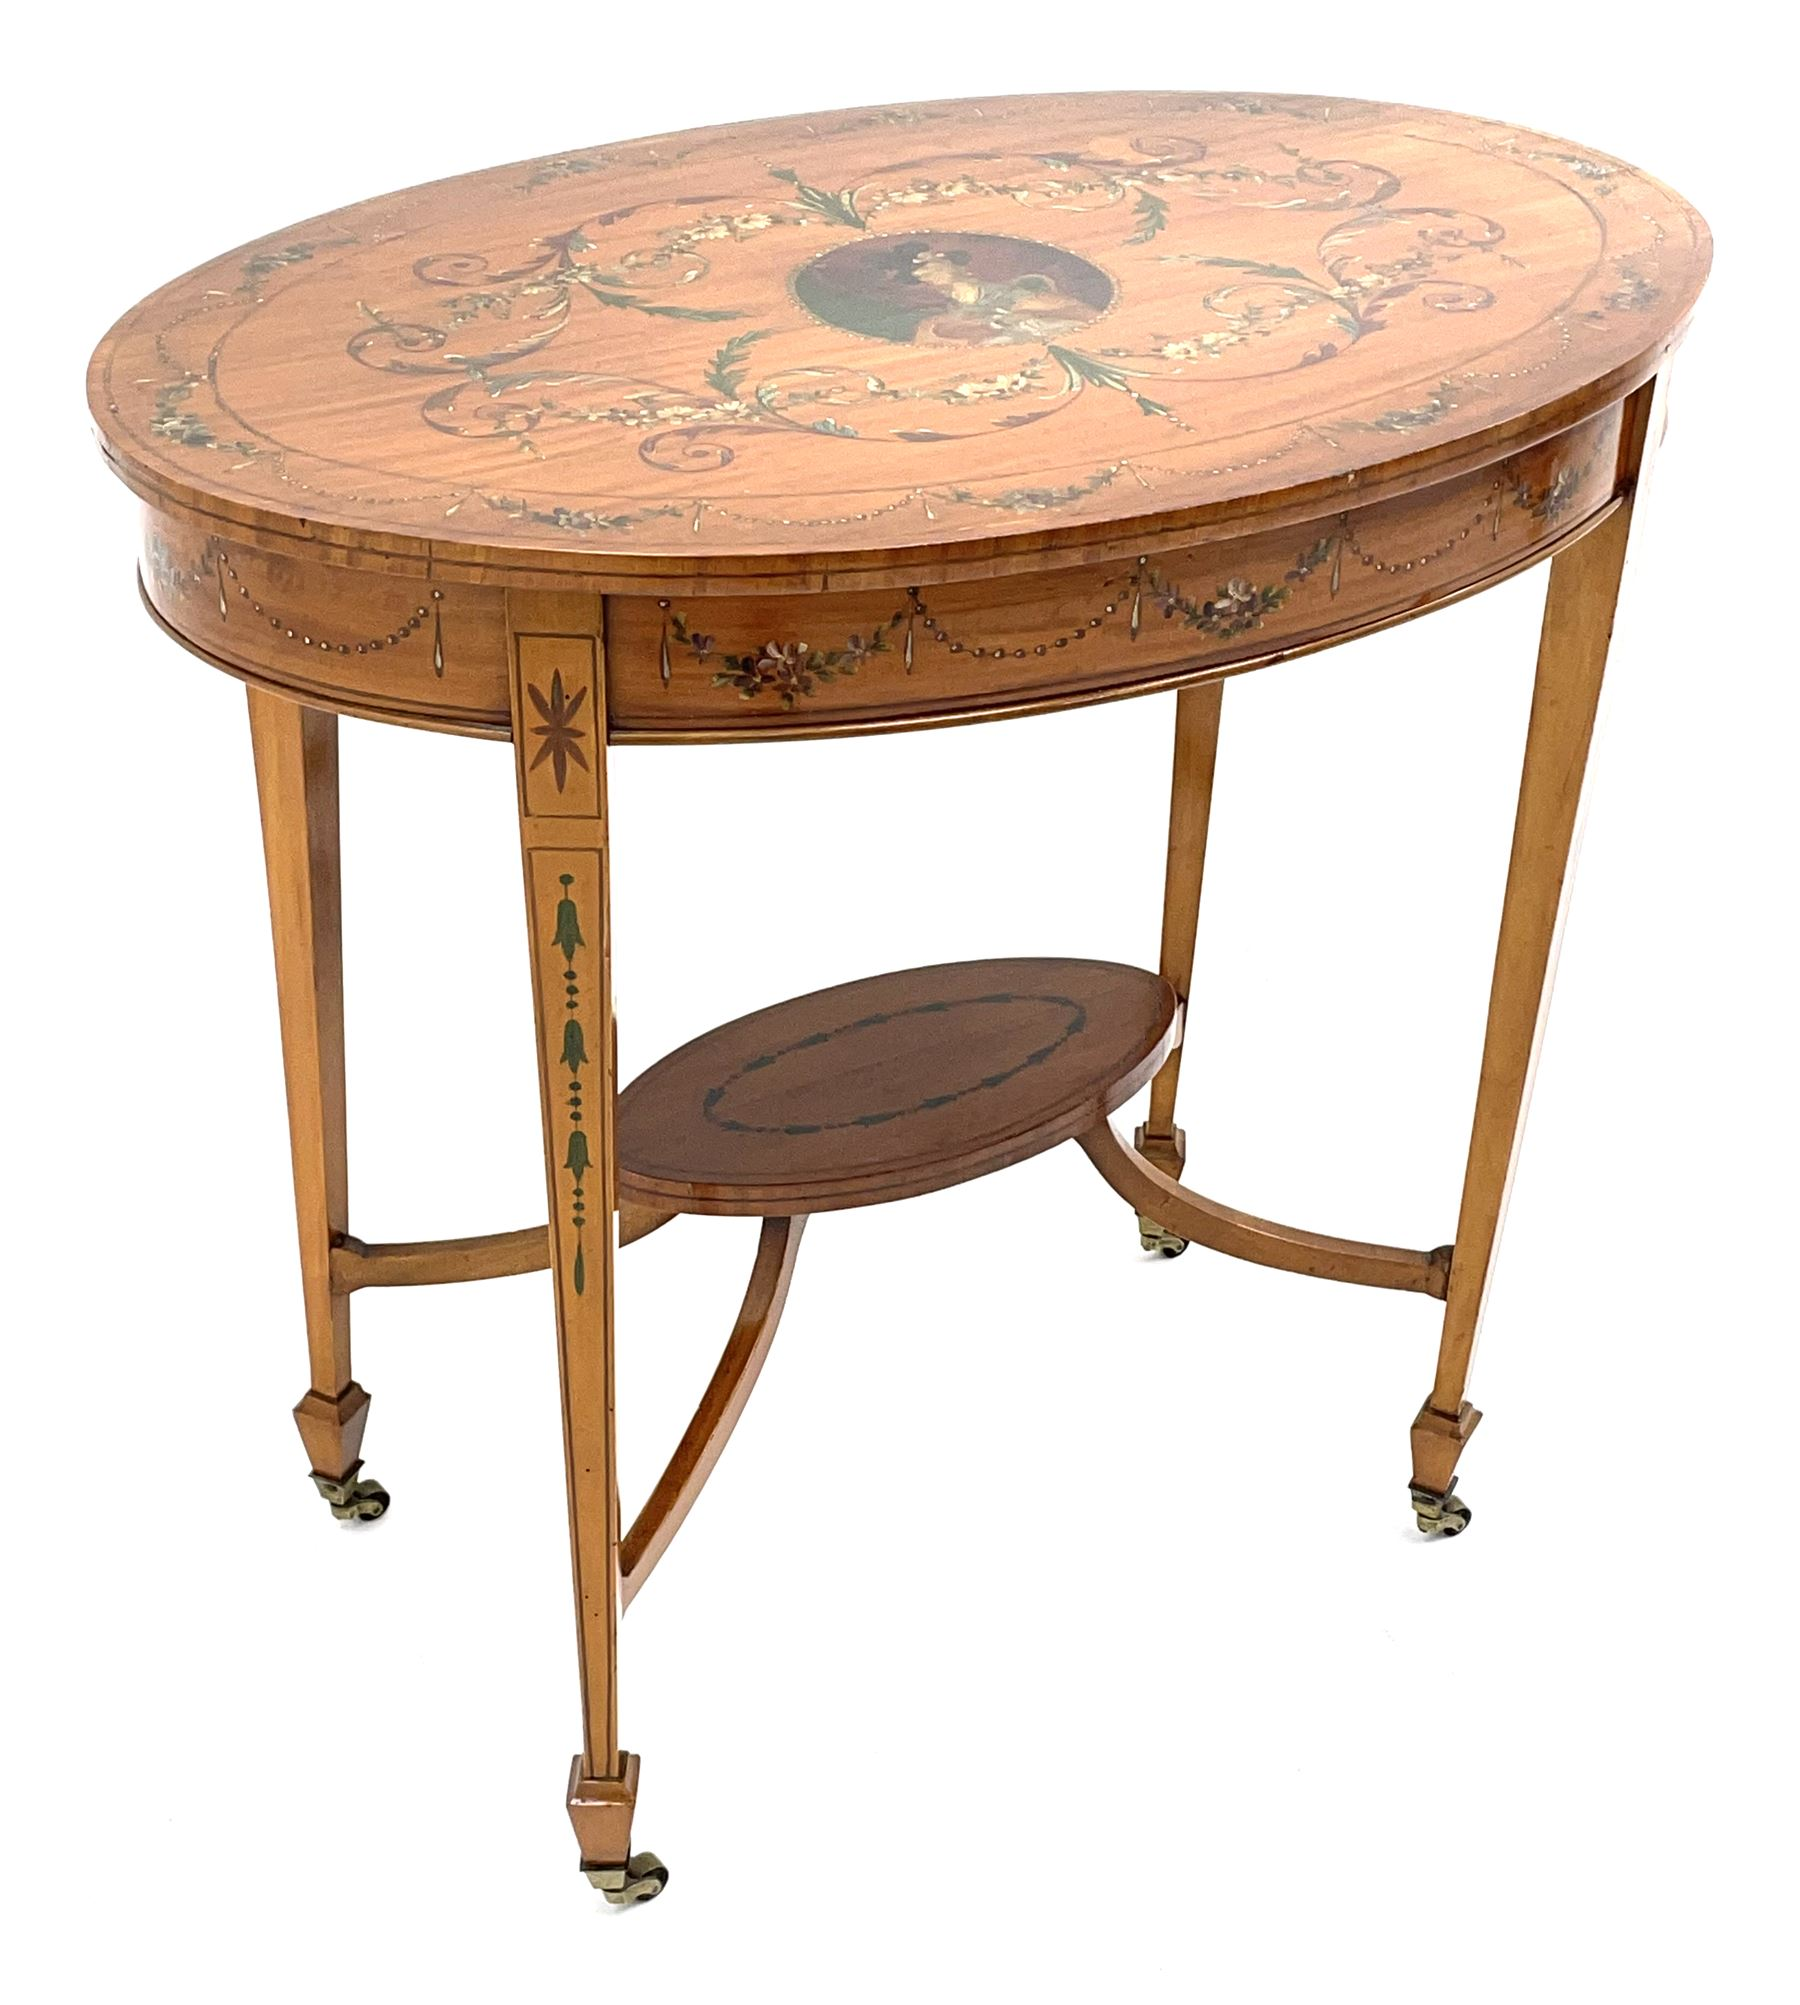 Edwardian Sheraton revival satinwood and painted centre table - Image 2 of 8